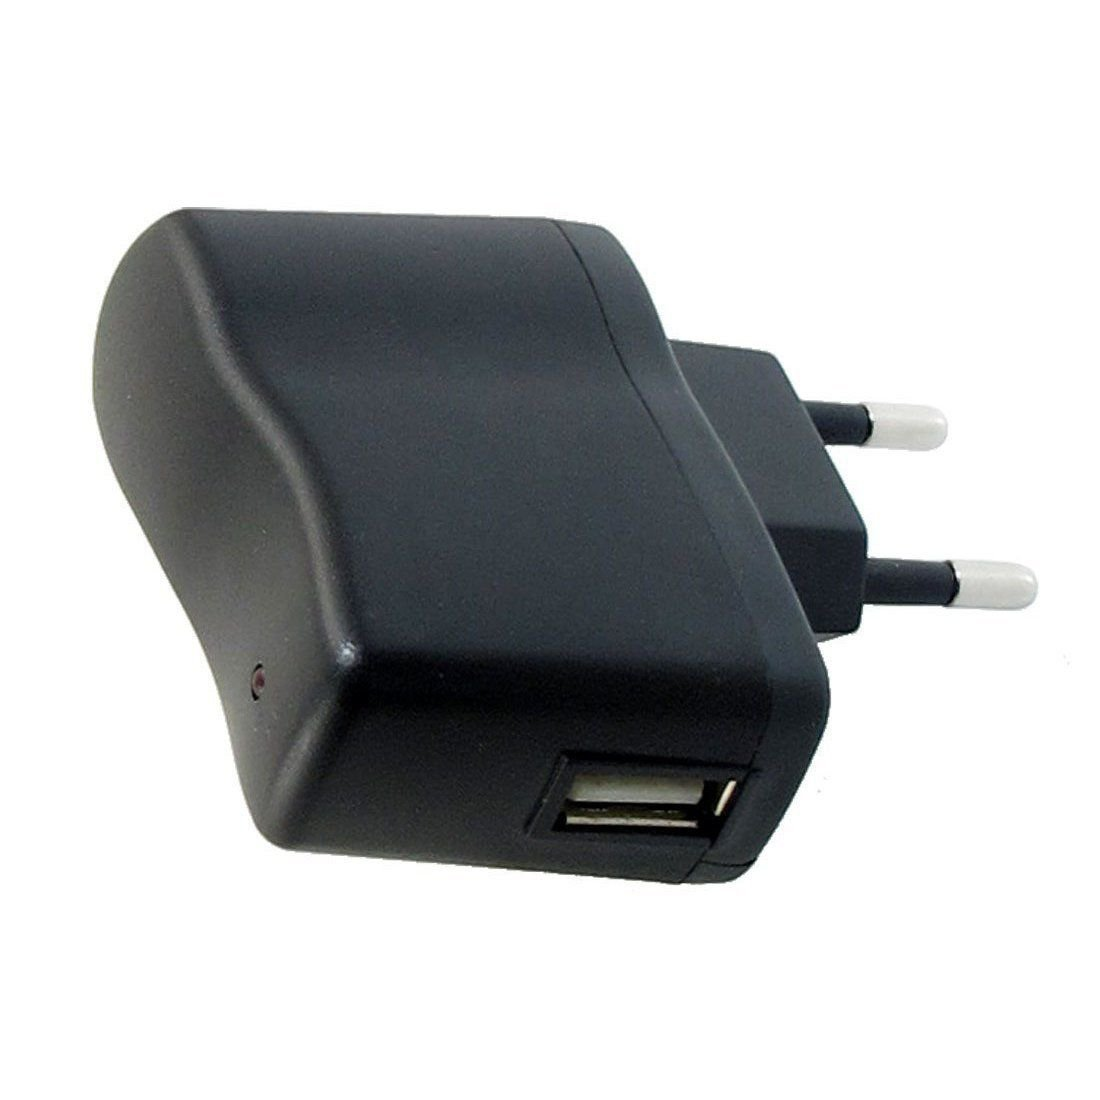 AC 110V-240V to DC 5V 0.5A 500mA USB to EU Plug Power Adapter Charger